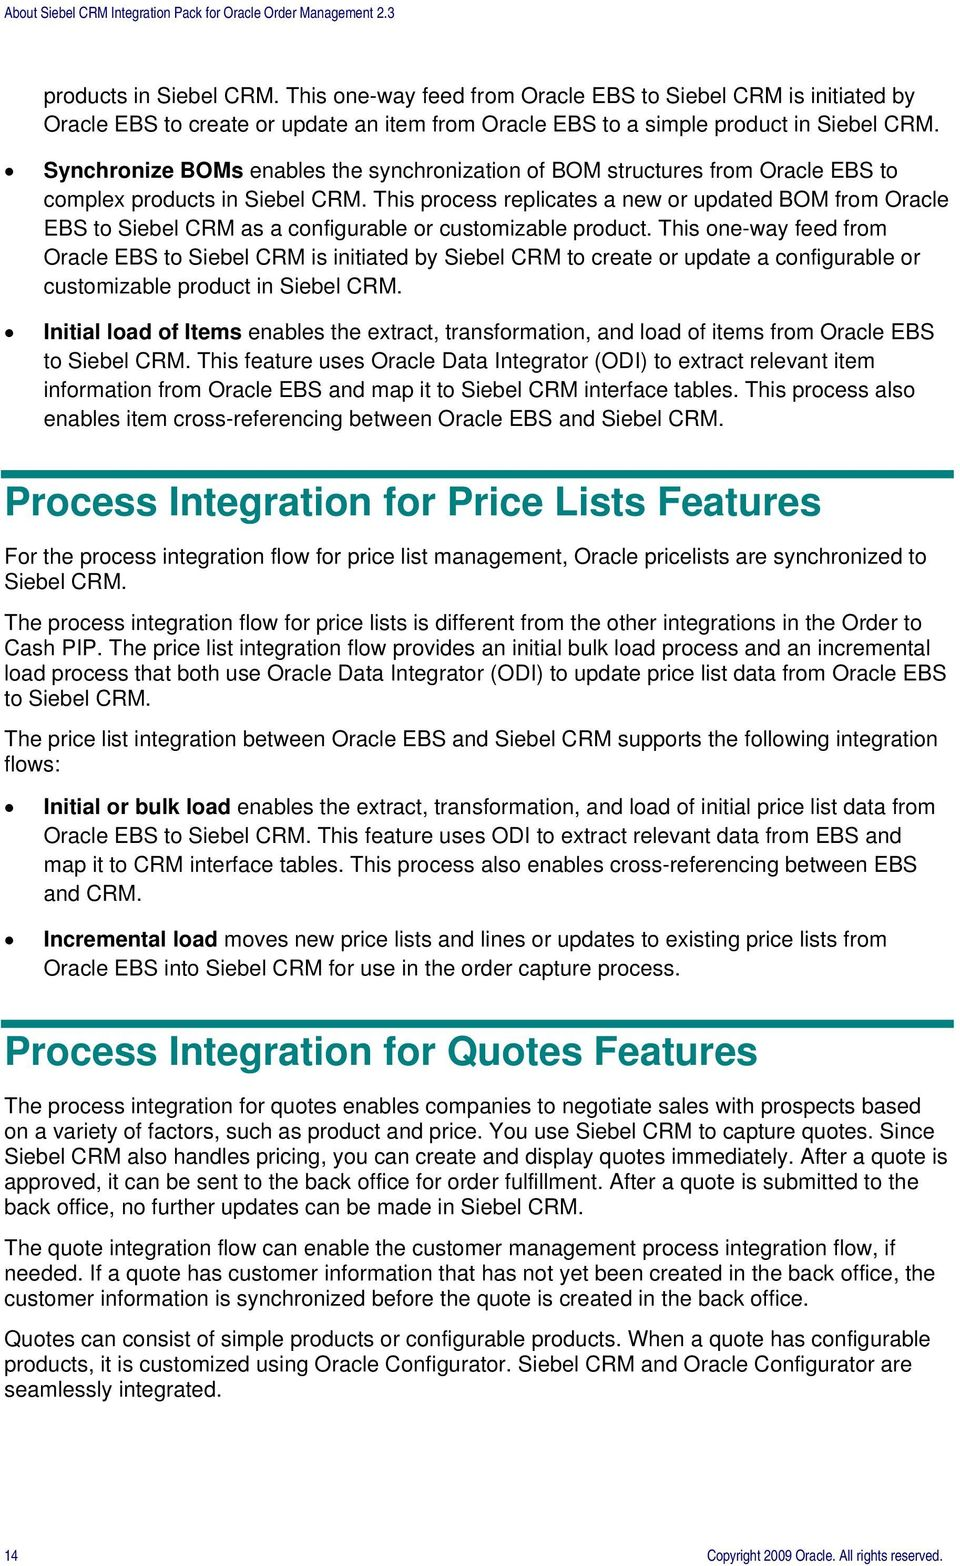 This process replicates a new or updated BOM from Oracle EBS to Siebel CRM as a configurable or customizable product.